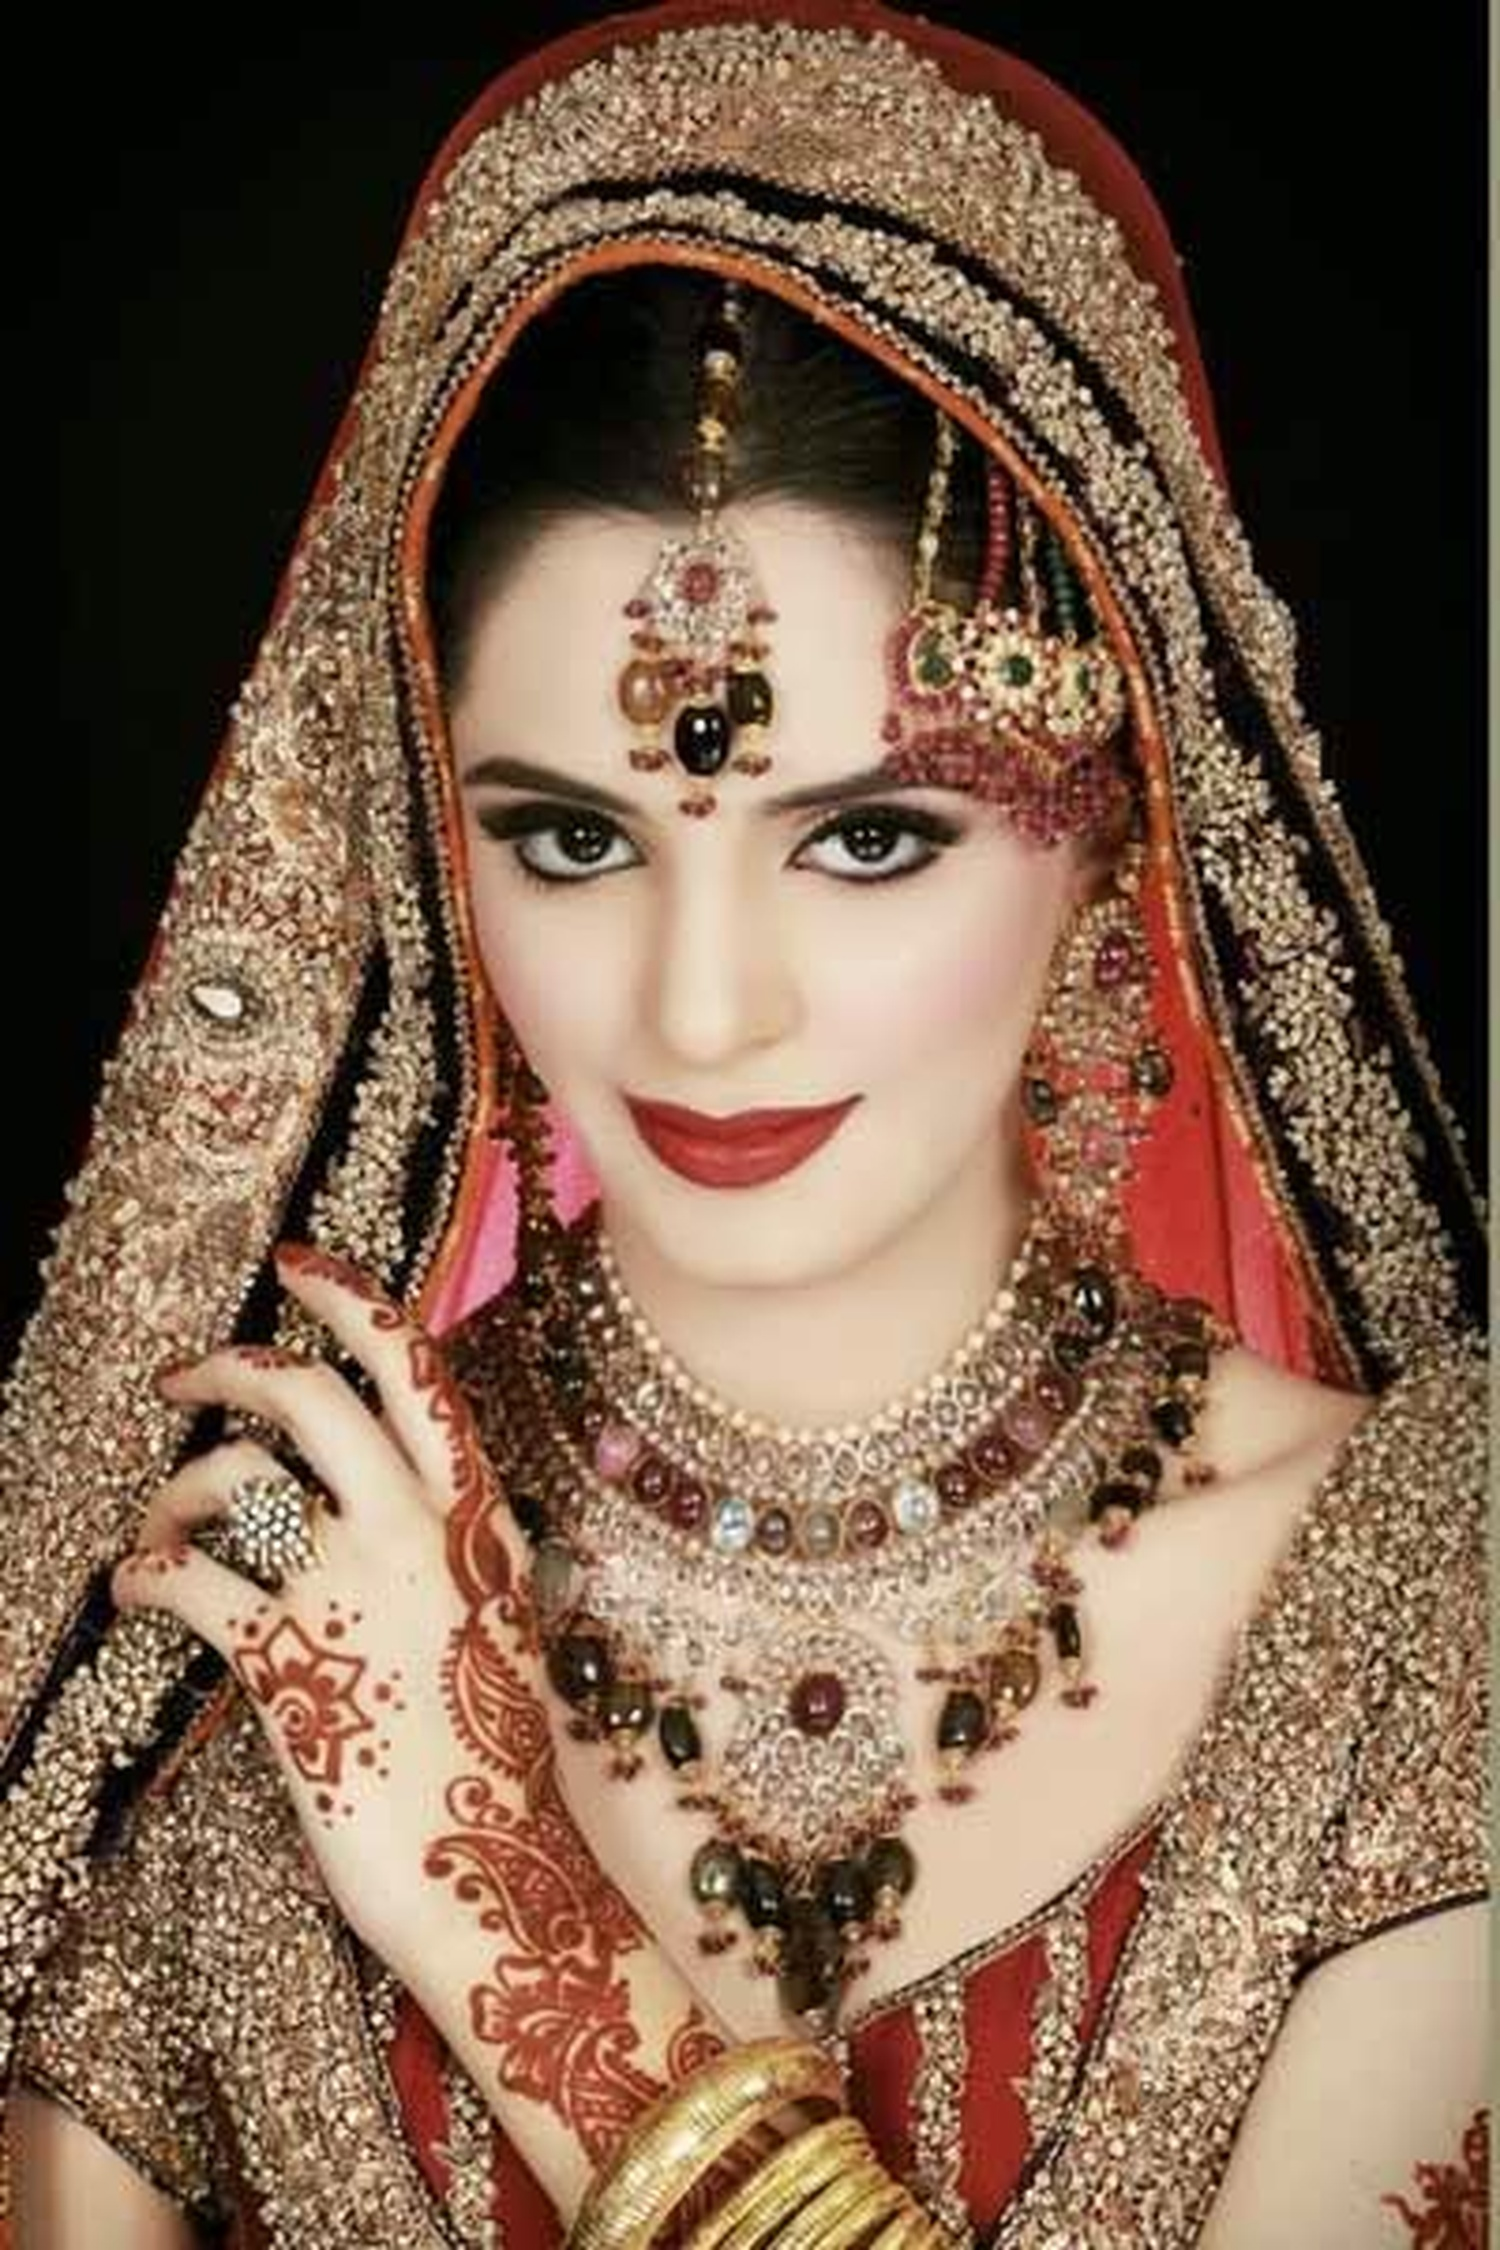 hindu single women in vendor The largest british indian asian dating service over 30000 uk website users per month for online dating, events & speed dating for hindu, sikh & muslim singles.